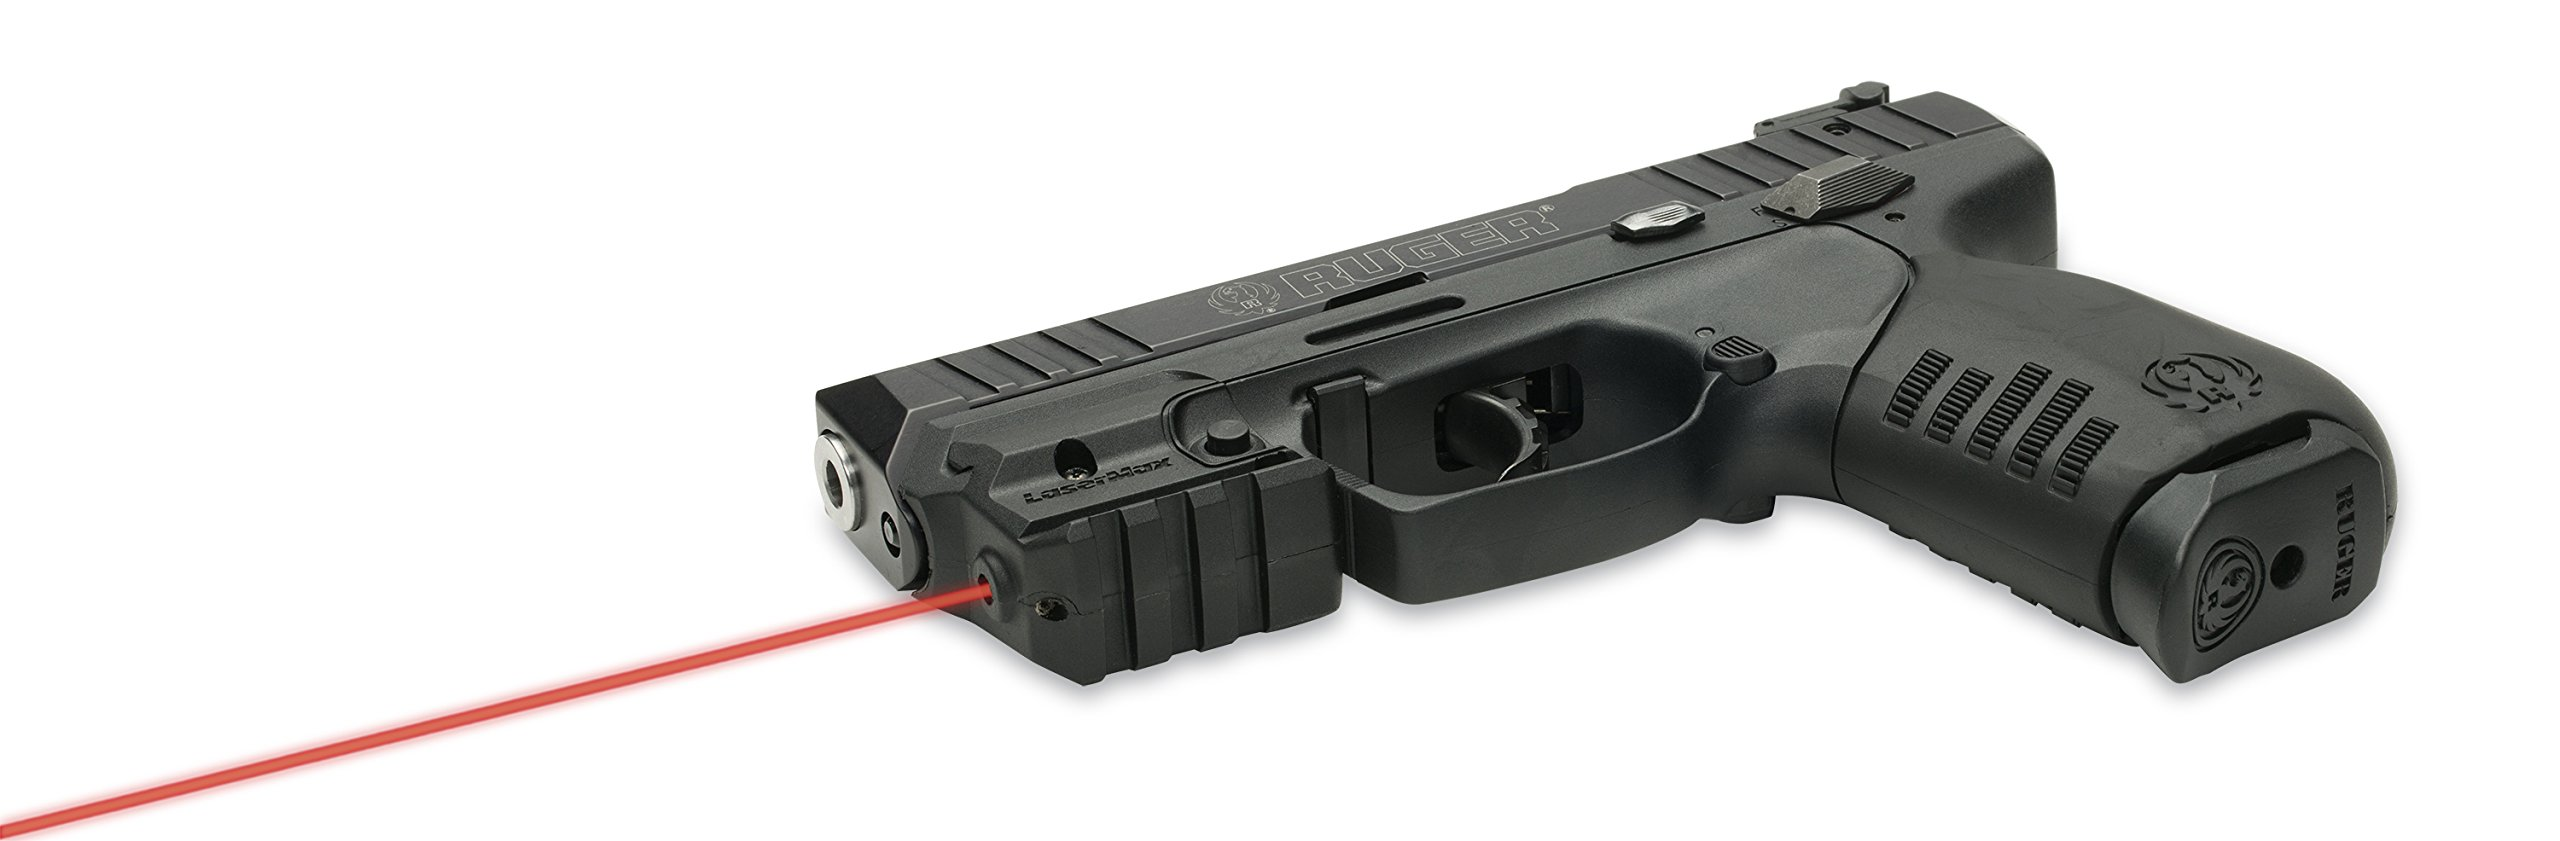 Laser Max LMS-RMSR Rail Mounted Laser (Red) For Ruger SR Series of Handguns by LaserMax (Image #5)